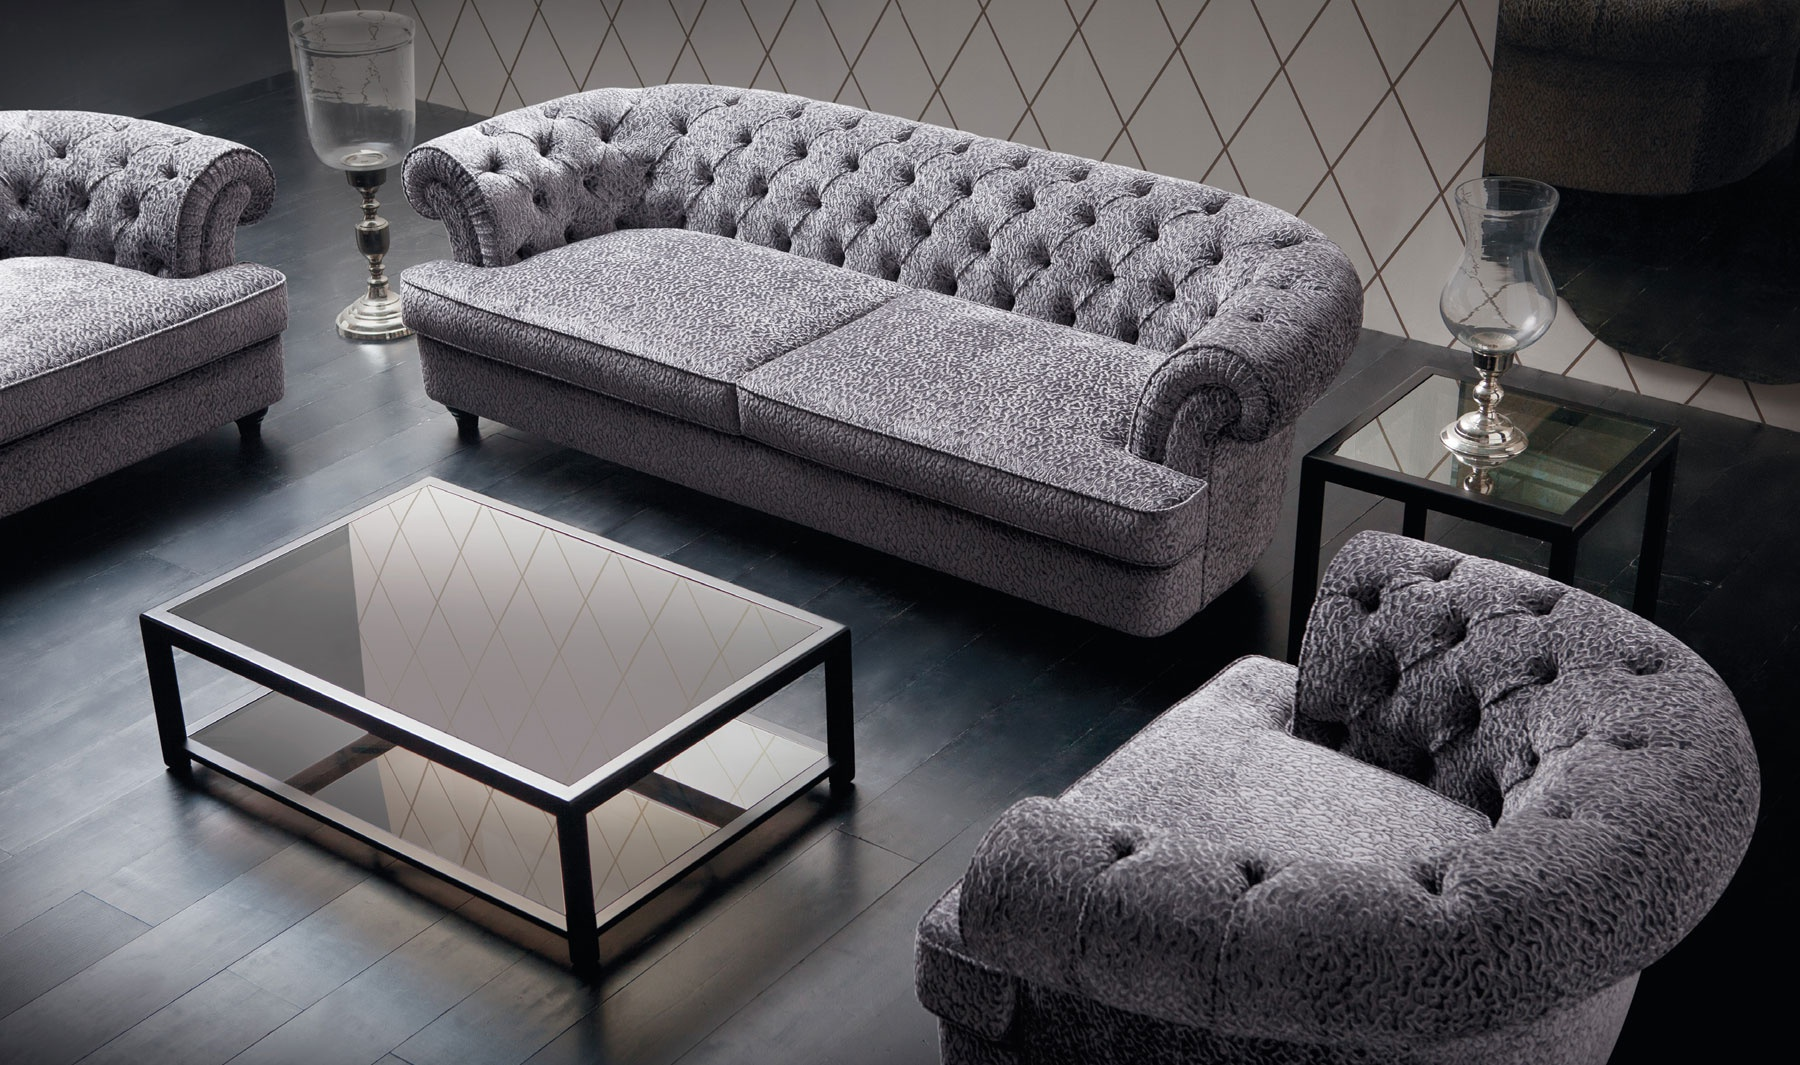 The Semicircular Sofa With Tufted Back Soft Lisette